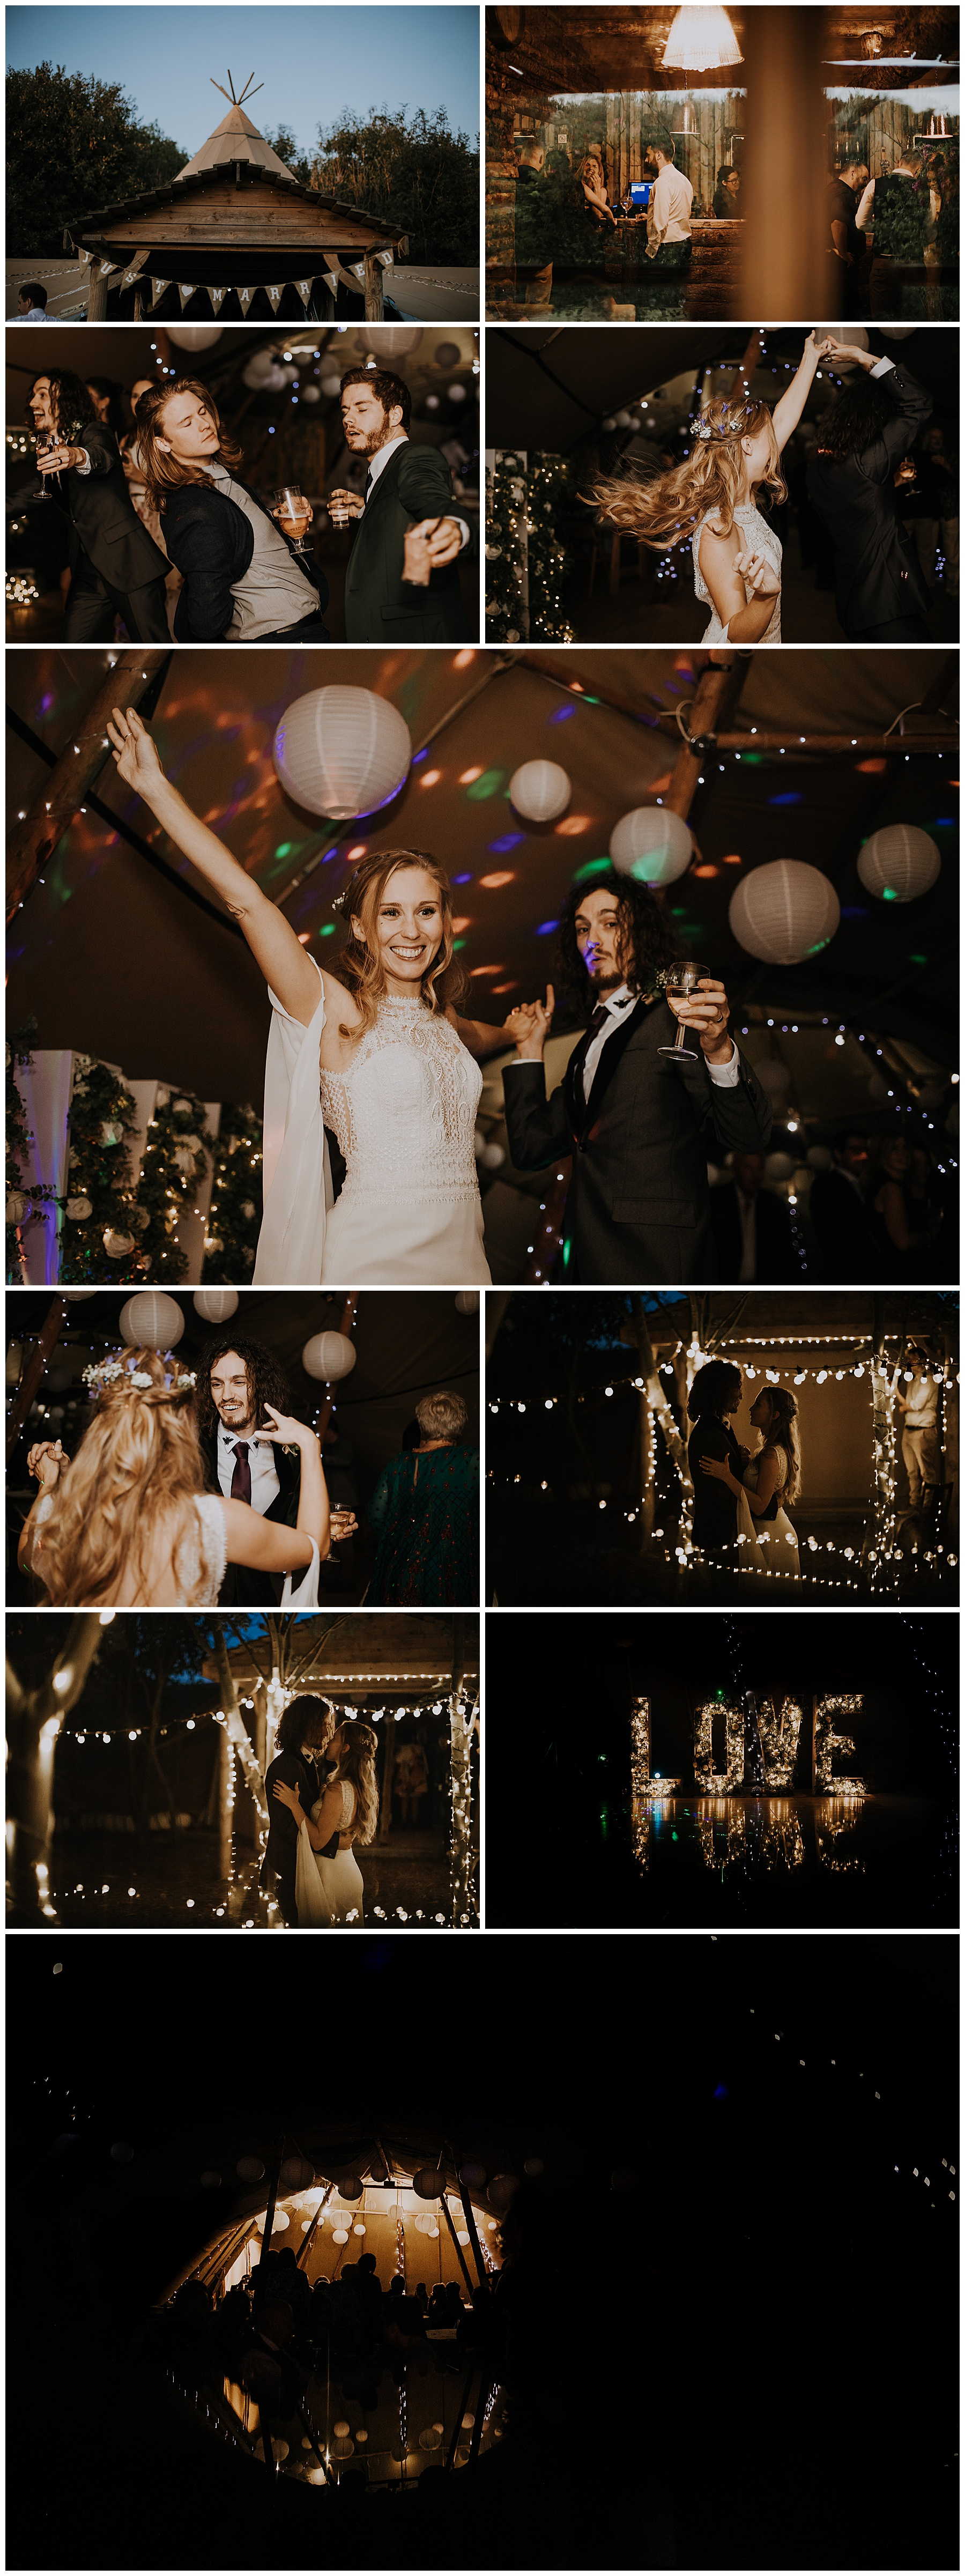 dancing and celebrating in the evening